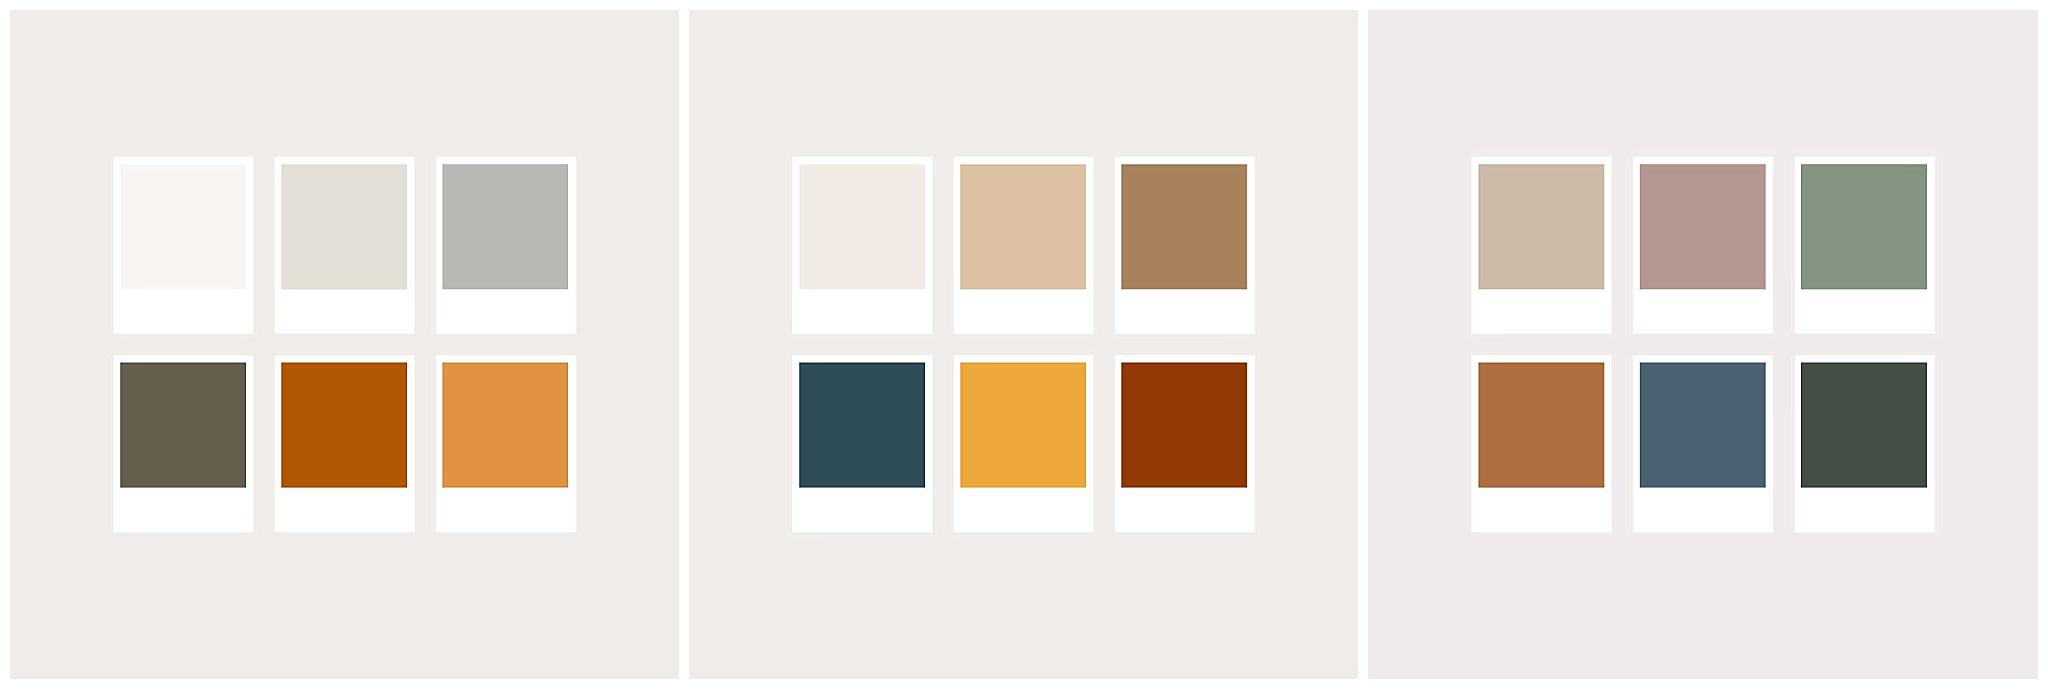 colors that look good for photos